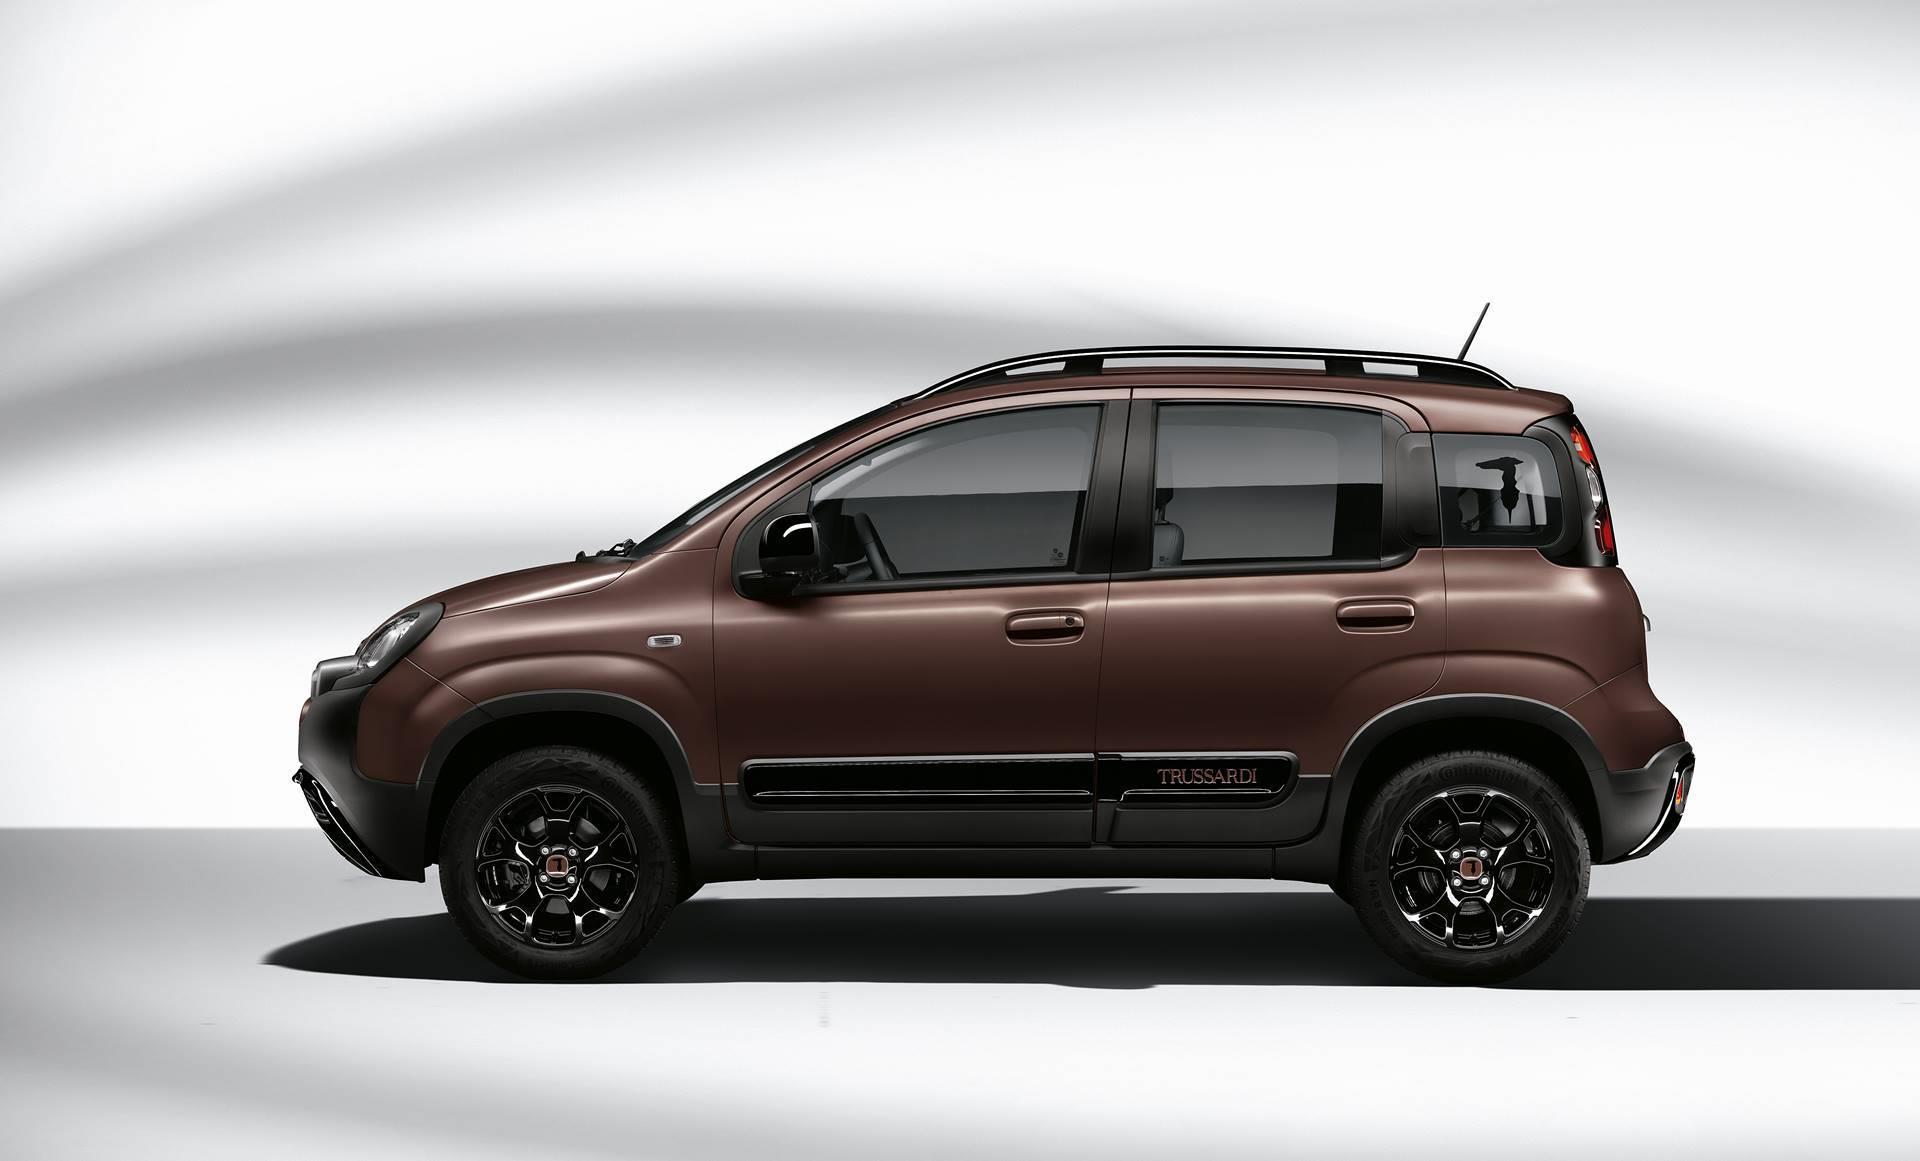 2020 Fiat Panda Trussardi News And Information Com